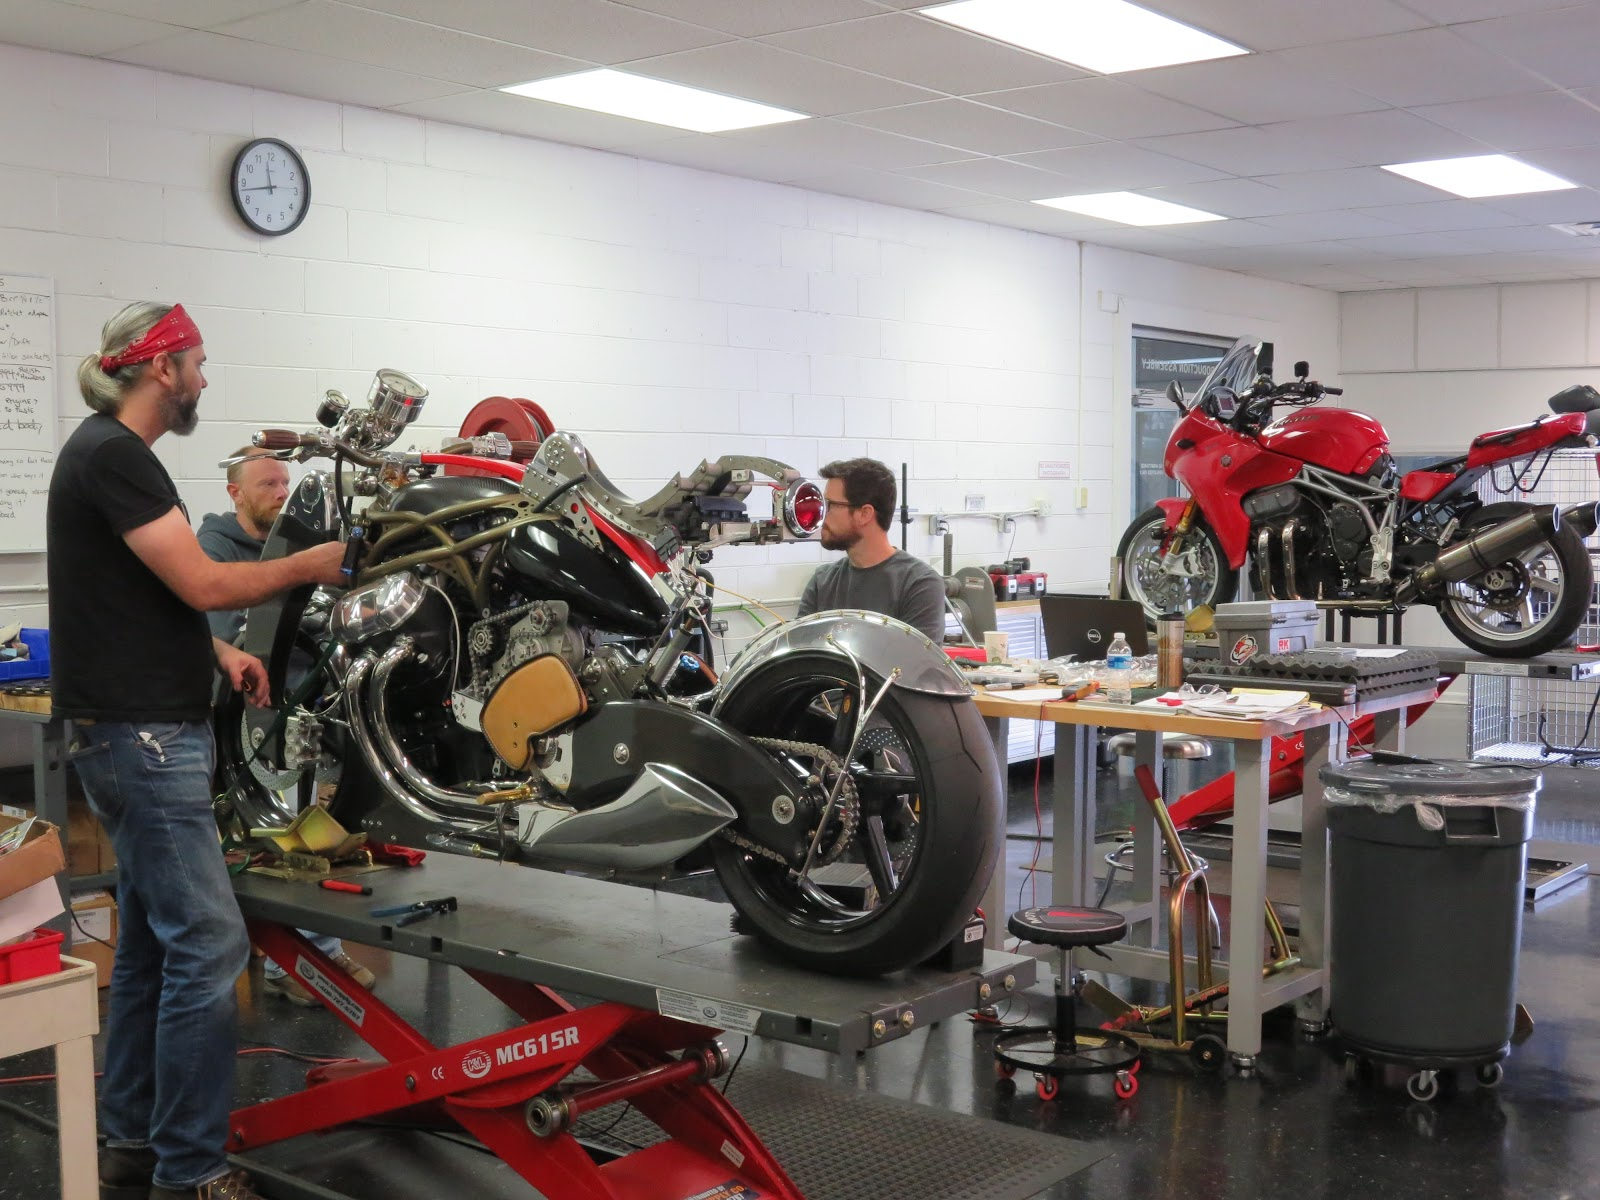 JT Nesbitt and Brian Case in the Motus Factory